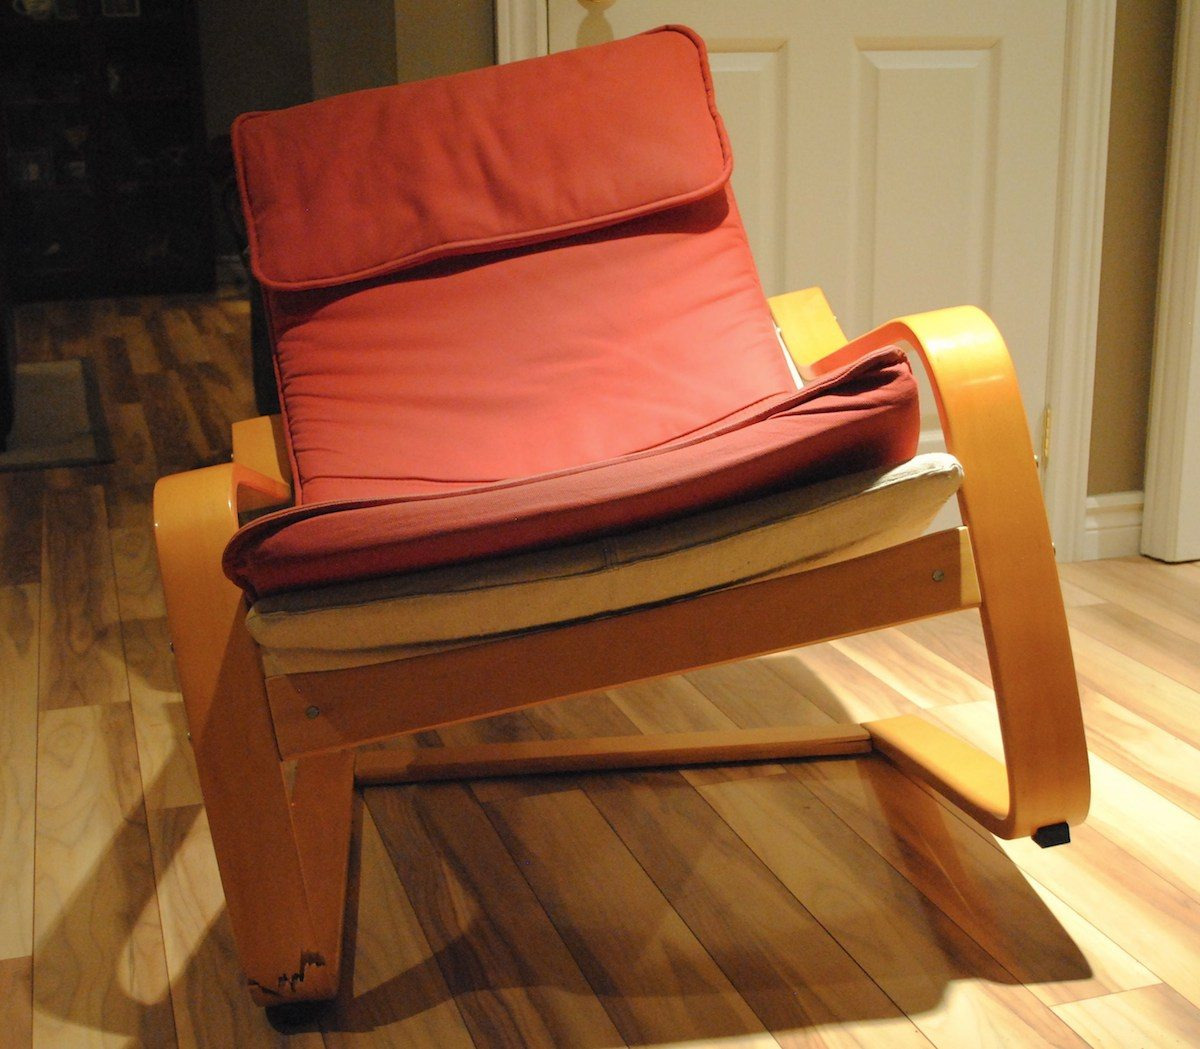 Marvelous Ikea Poang Chair That Snapped